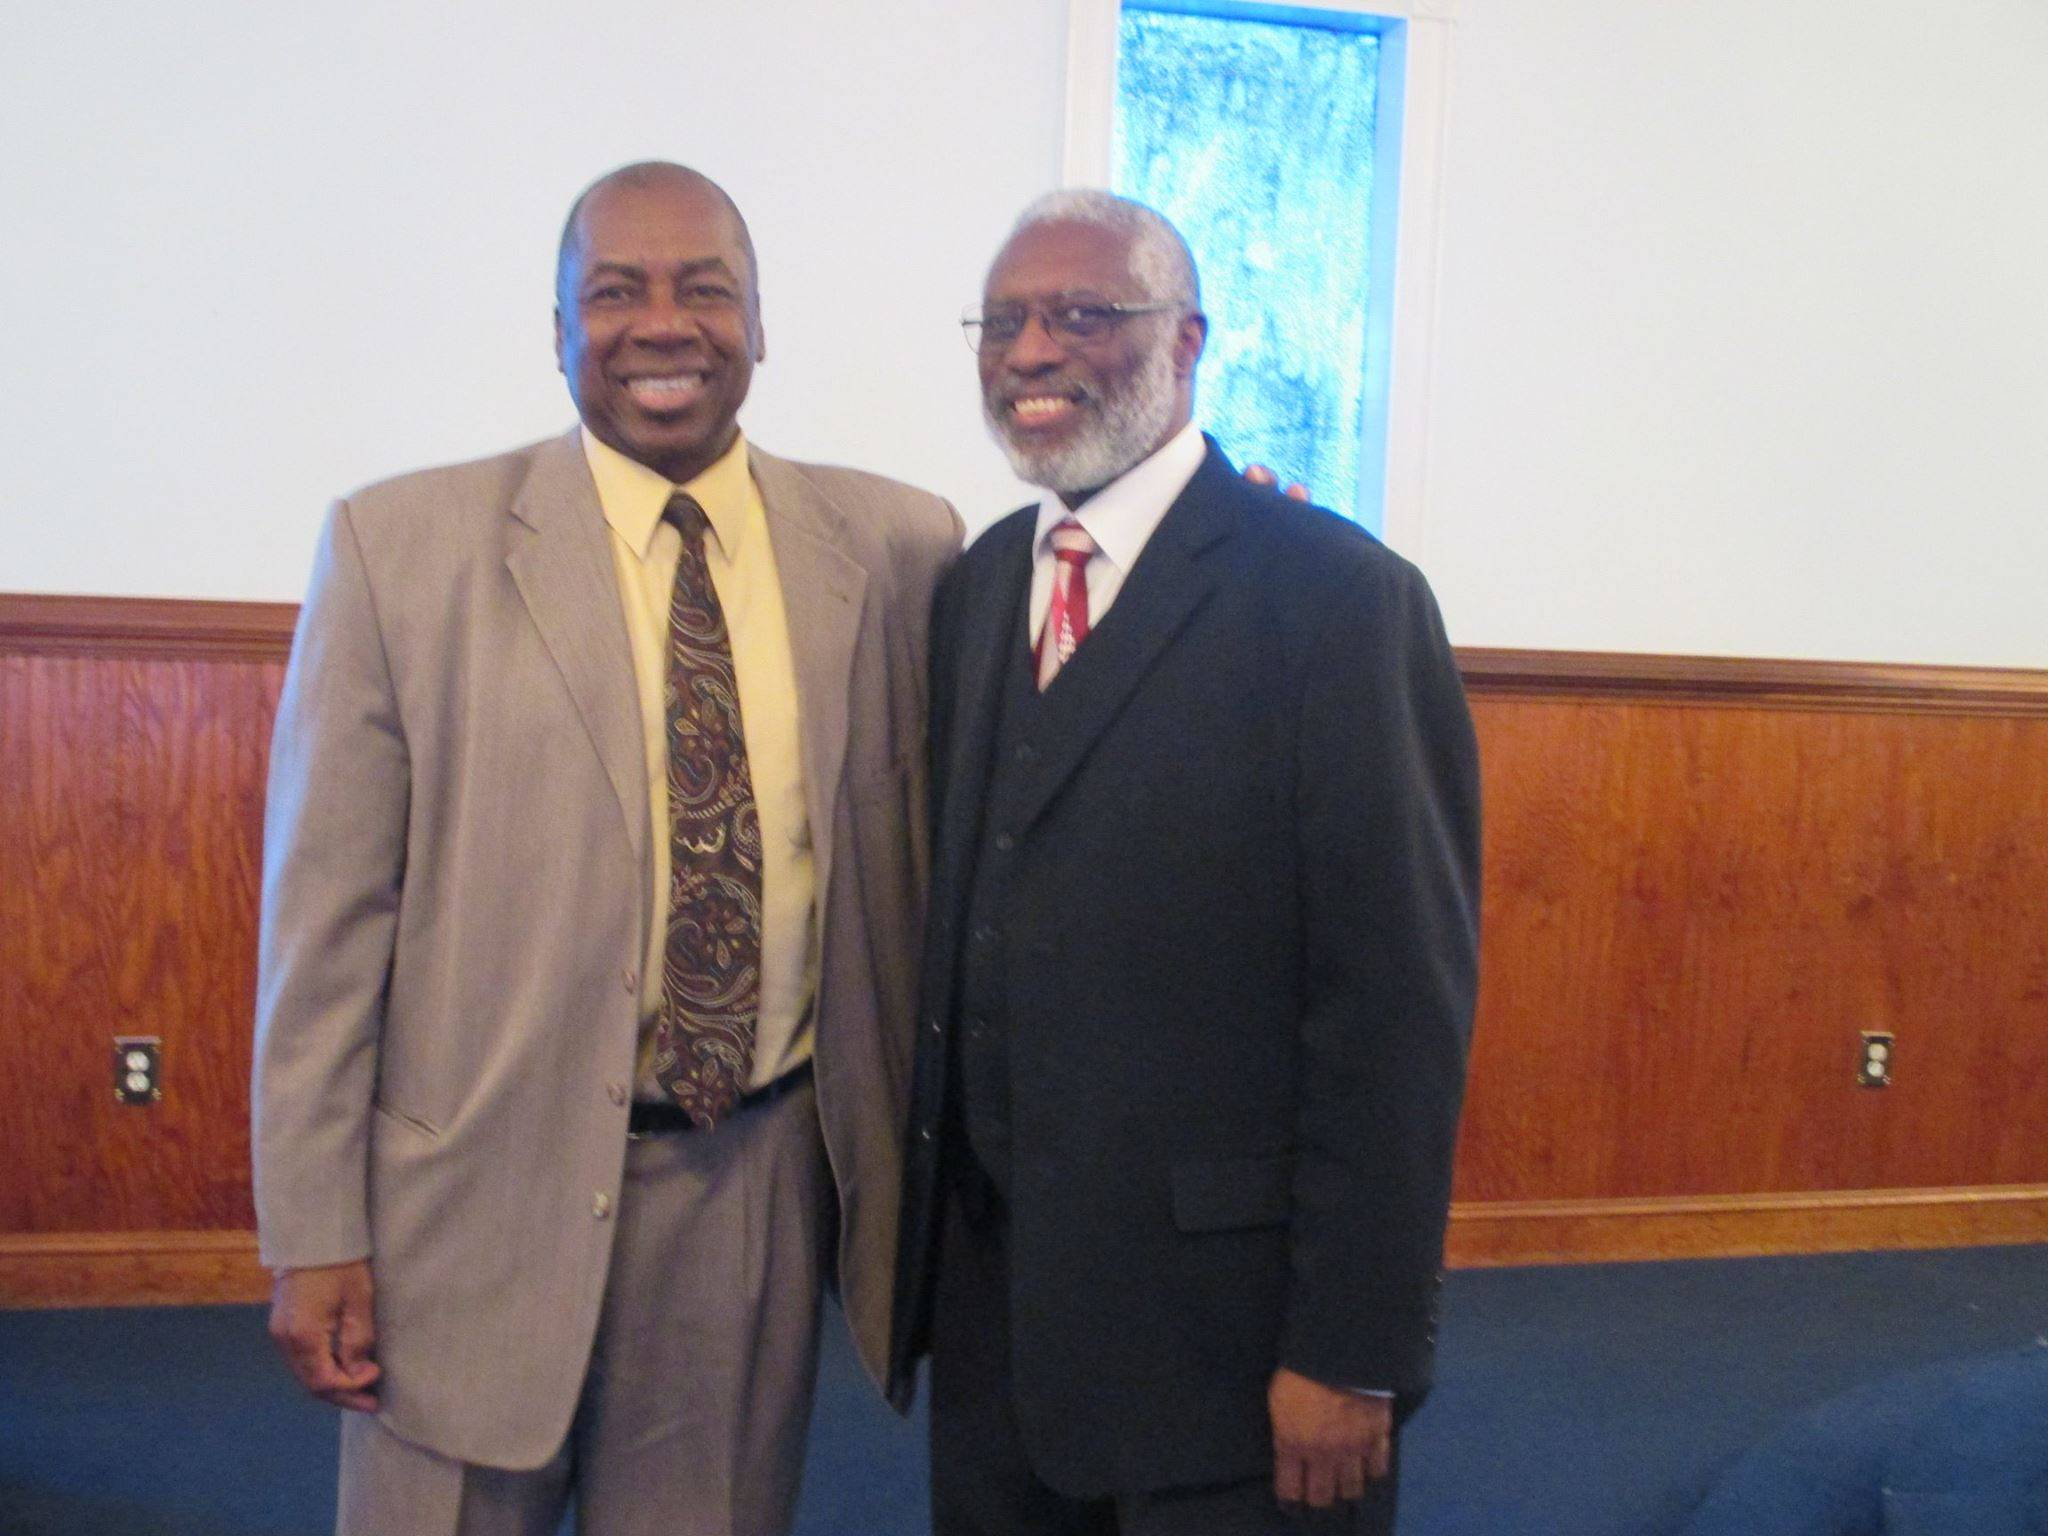 Pastor Joseph and J. Bishop Knox